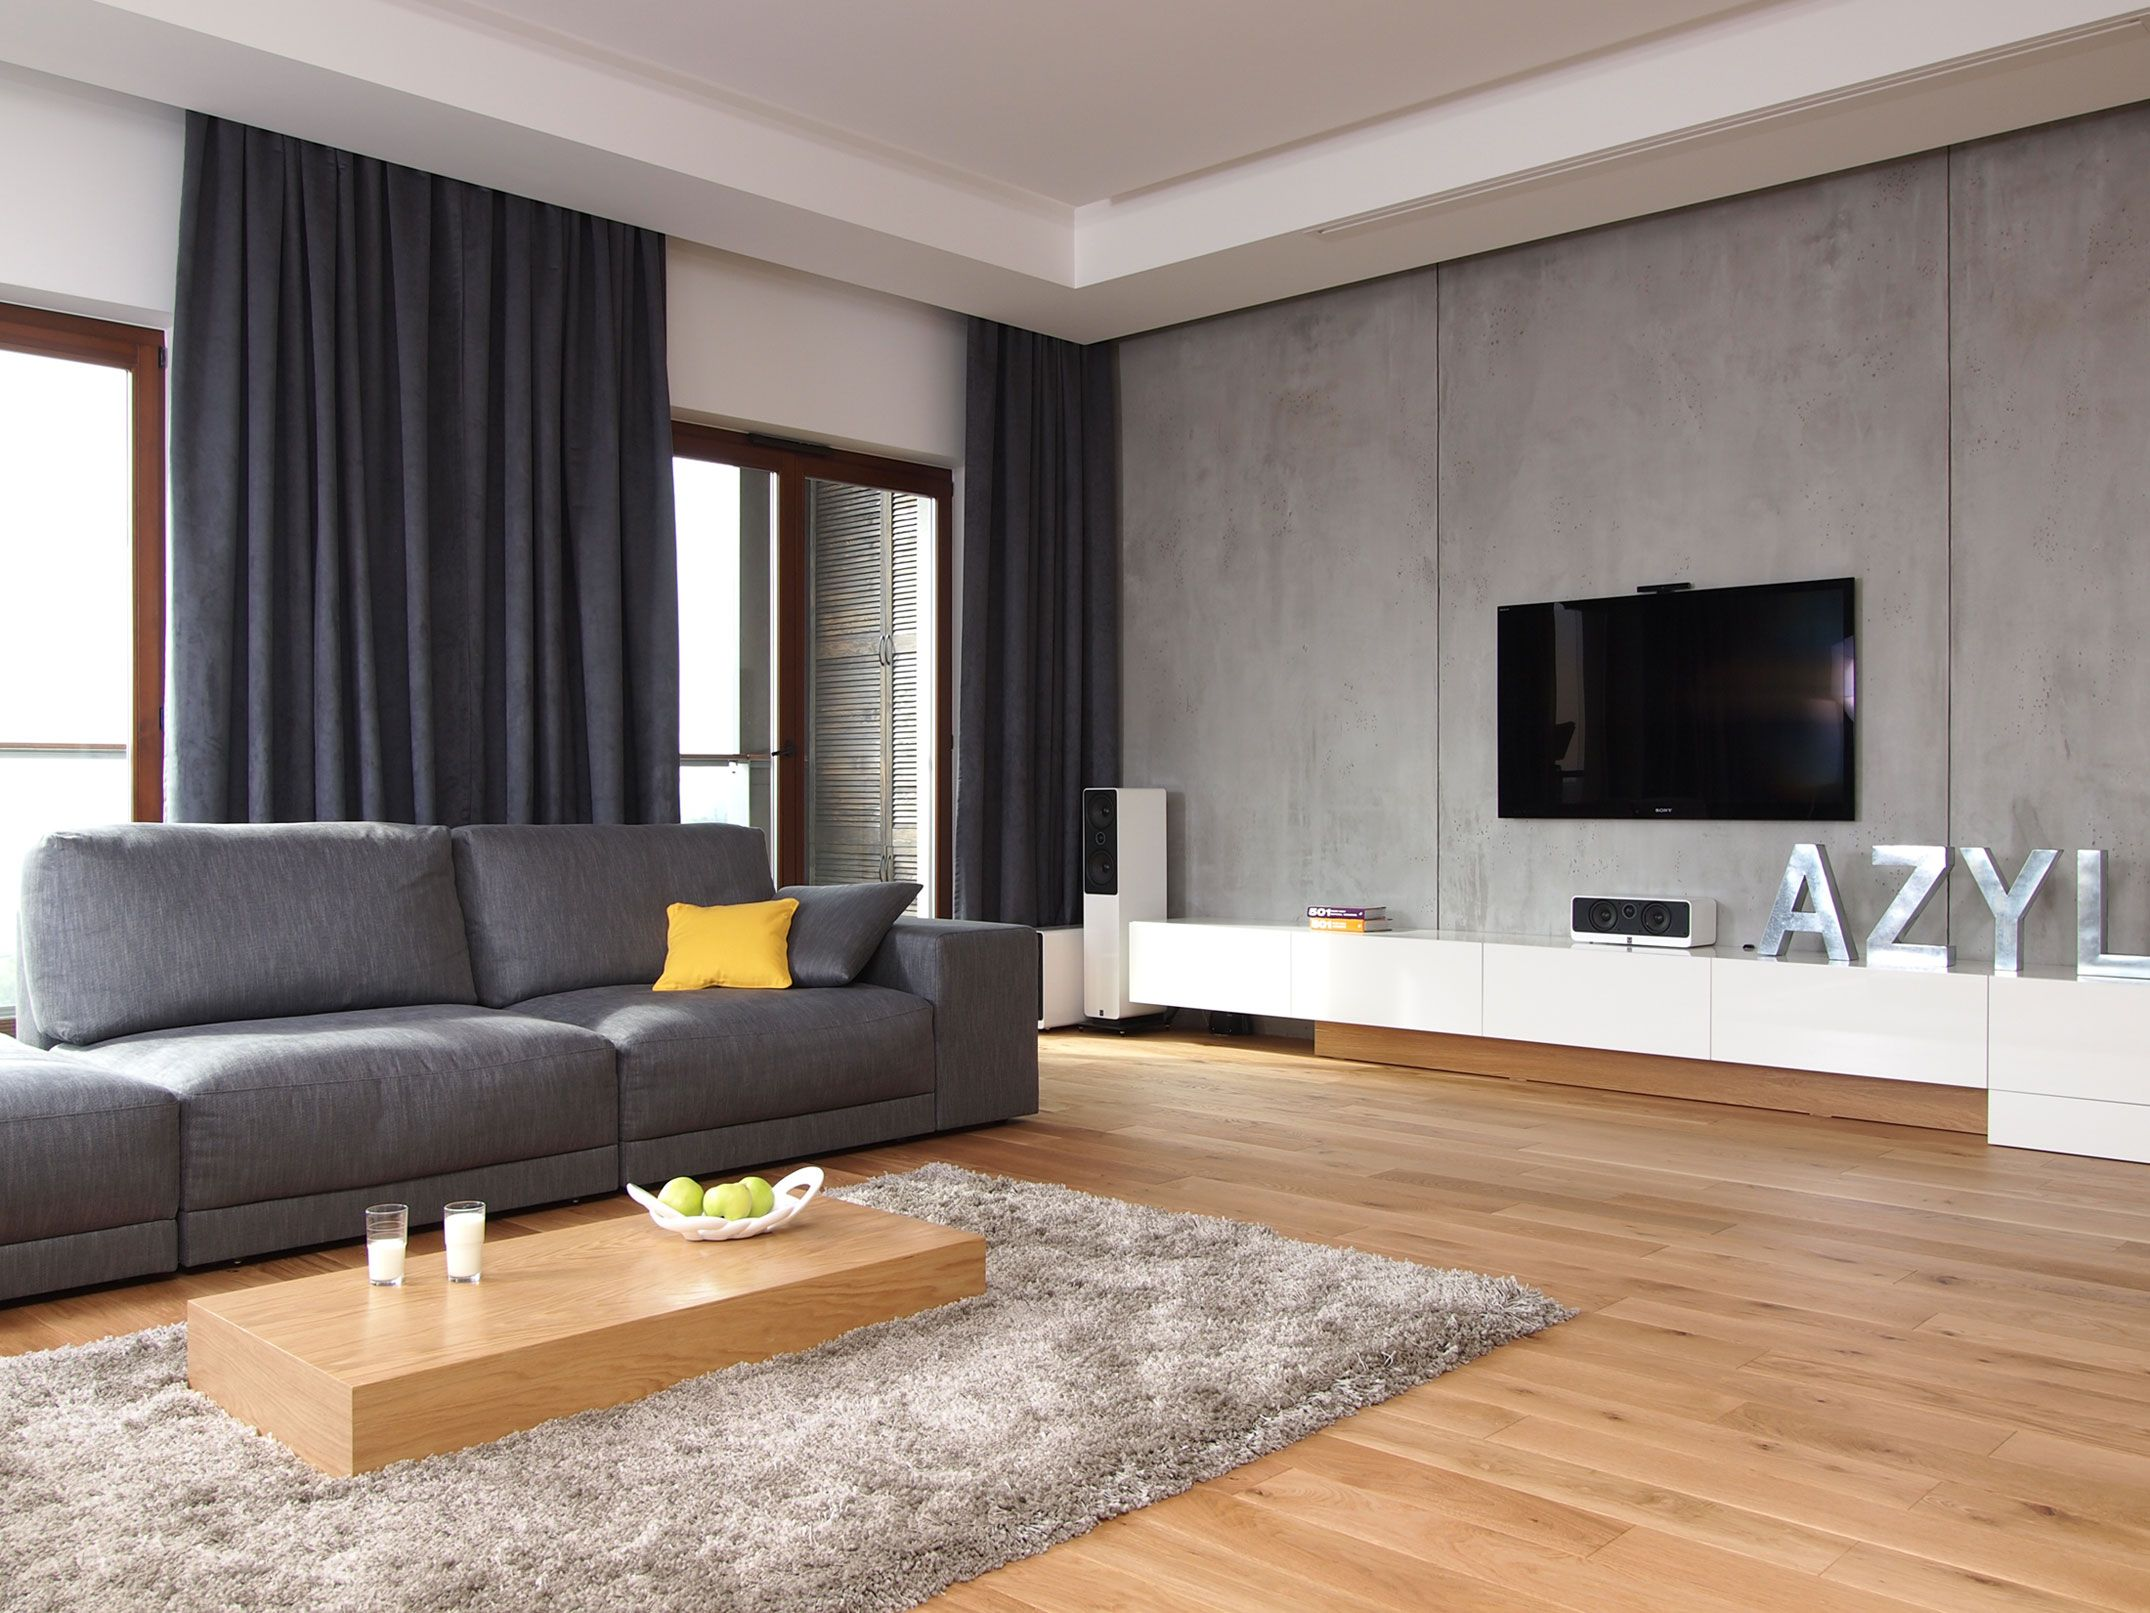 [Living Room] : Elegant Living Room Design With Flat Screen Television  Along With White Drawer Also Available Grey Sofa Sets With Cushion Plus Bay  Window ... Part 97